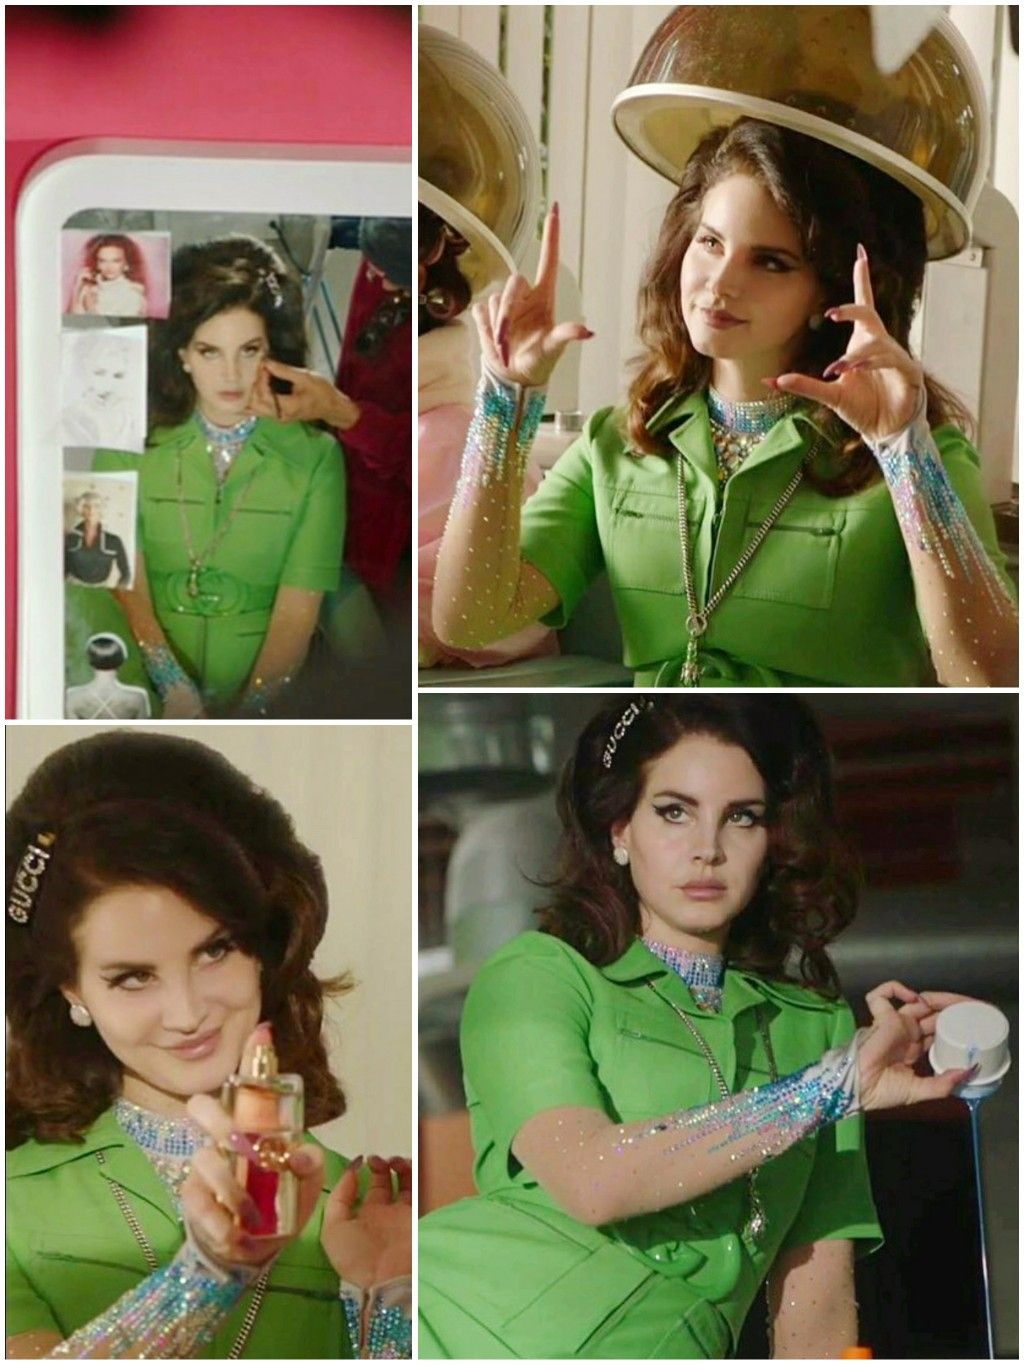 Lana Del Rey In The Advertising Campaign For The New Gucci Guilty Fragrance Ldr Lana Del Rey Music Festival Outfit Lana